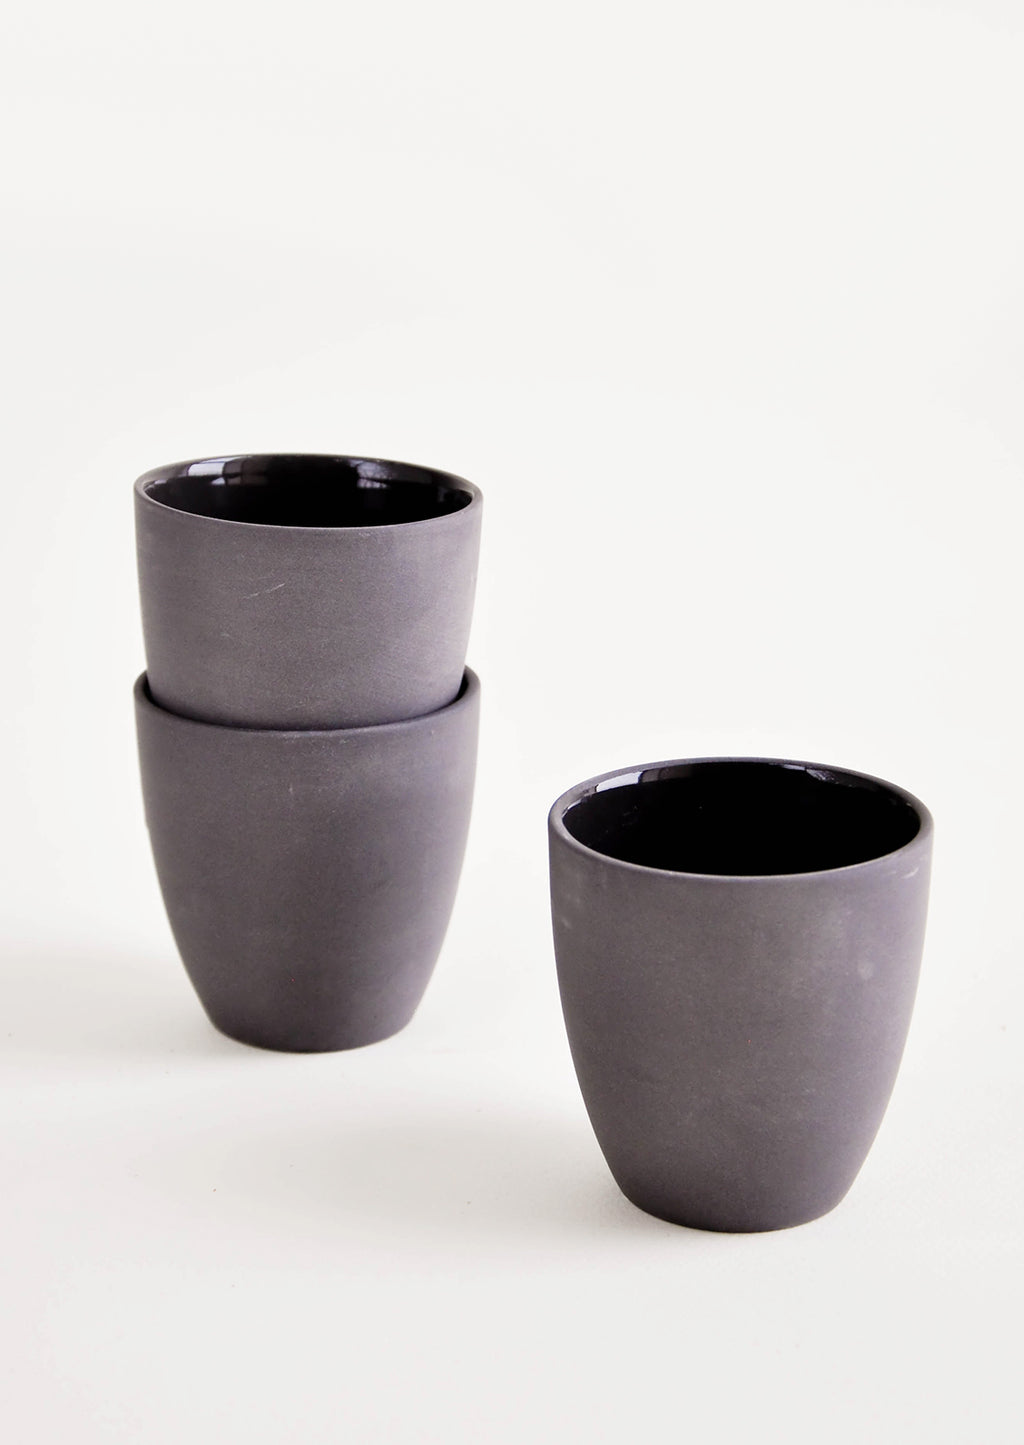 Black: Small black porcelain cup with matte exterior and glossy interior glaze - LEIF